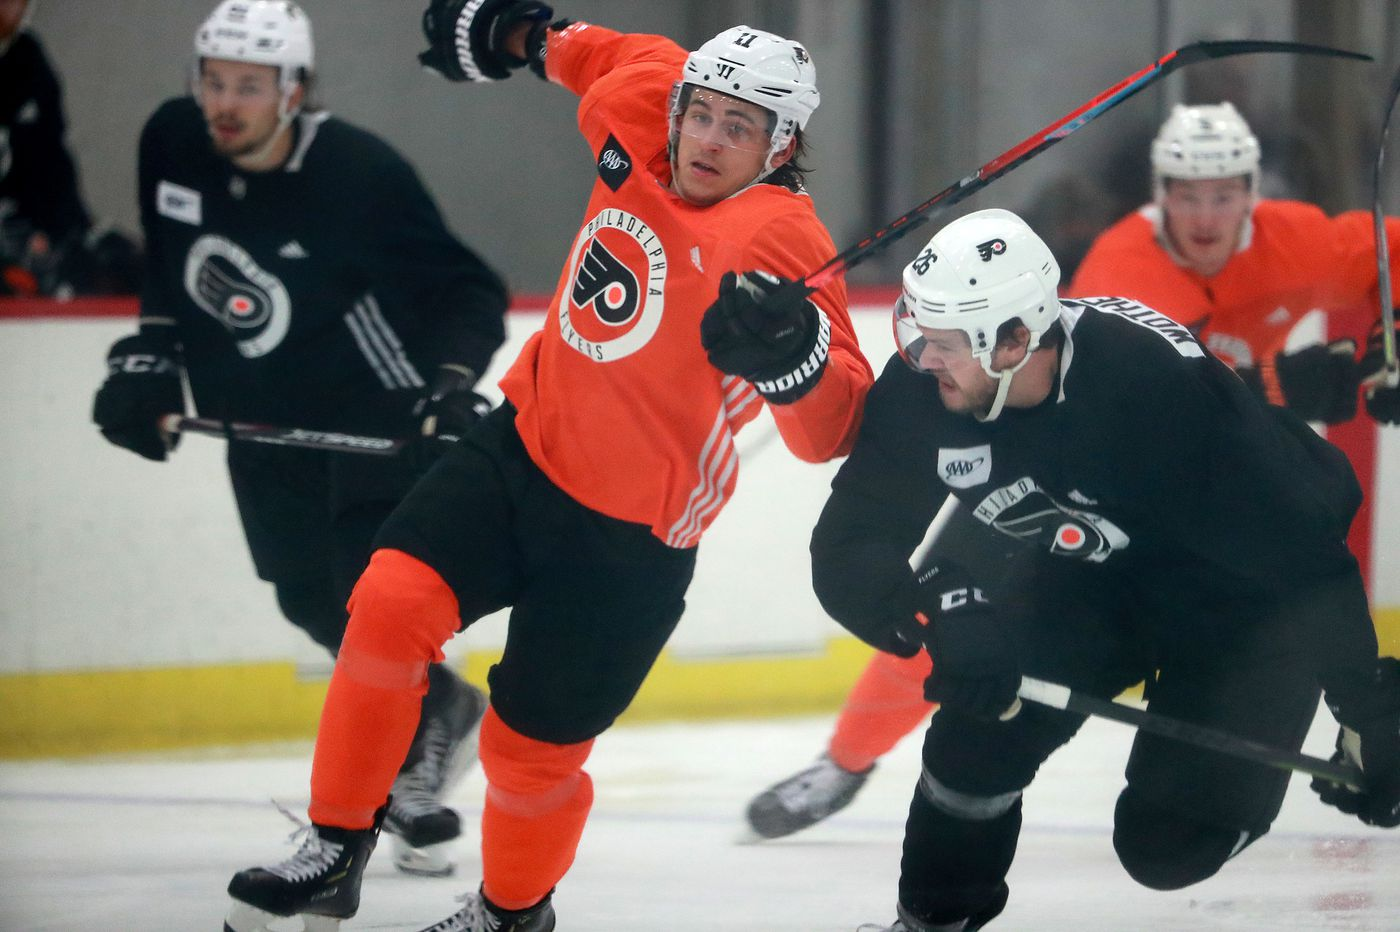 Flyers right winger Travis Konecny is using last year's playoff funk to 'fuel myself' for a strong season